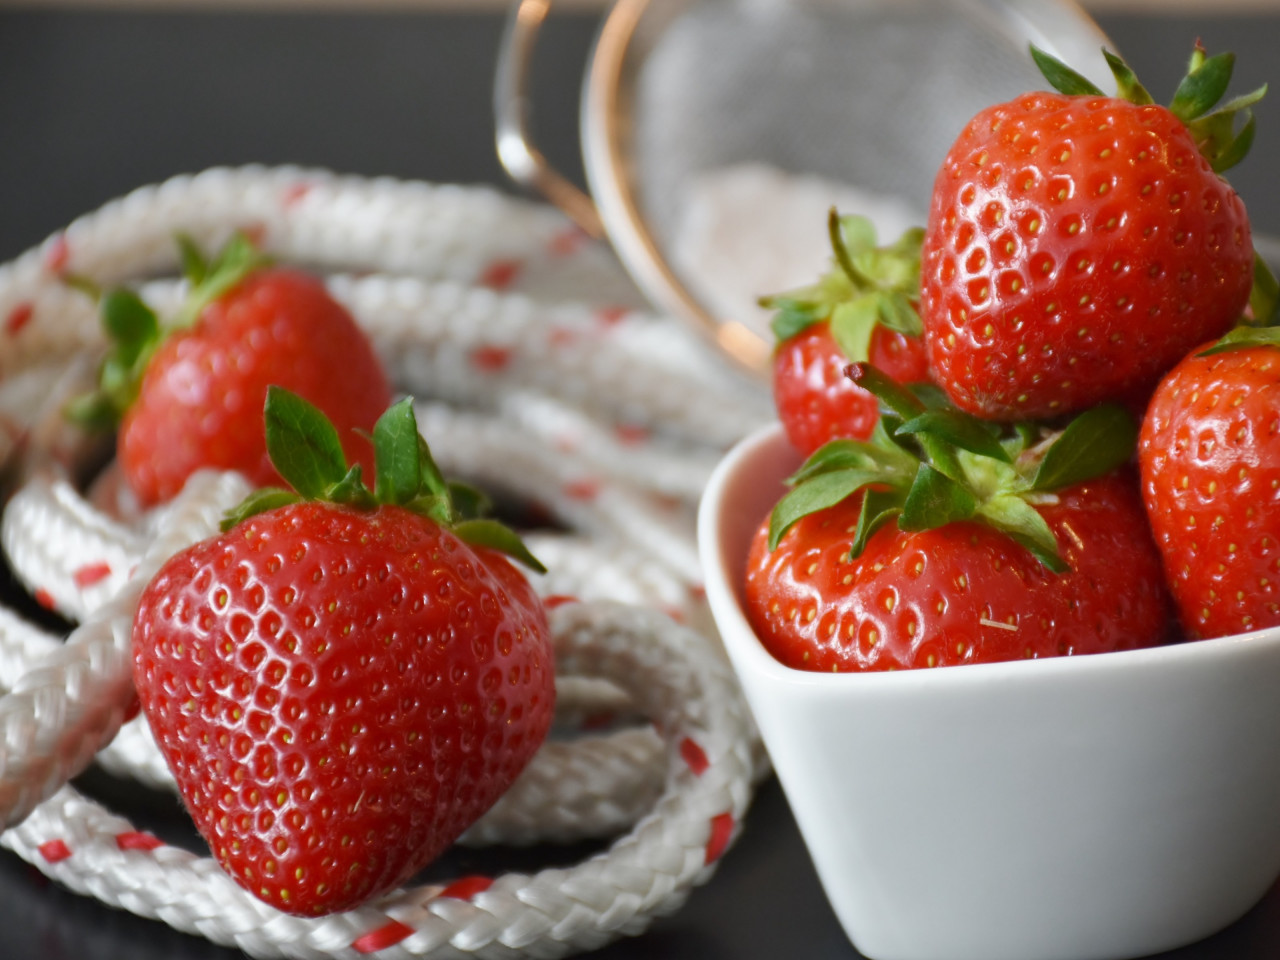 Strawberries wallpaper 1280x960